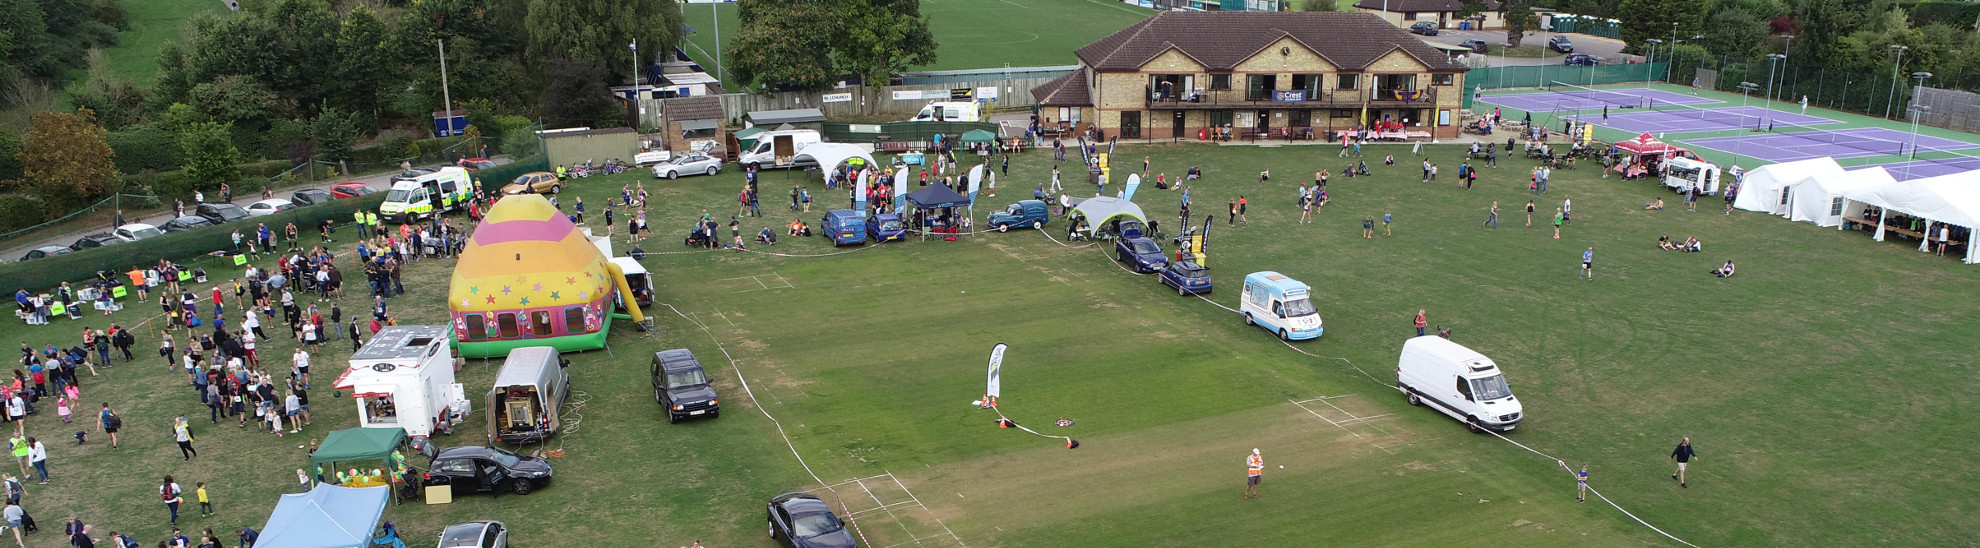 Aerial photograph of the Chippenham Sports Club field at the end of Chippenham Half Marathon